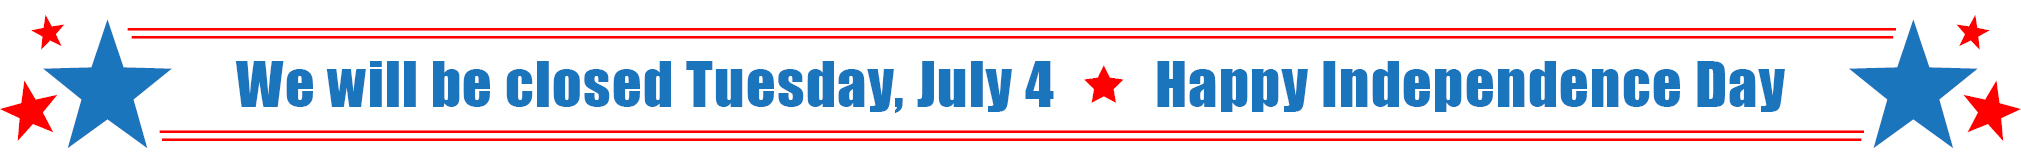 We will be closed July 4, 2017 for Independence Day.